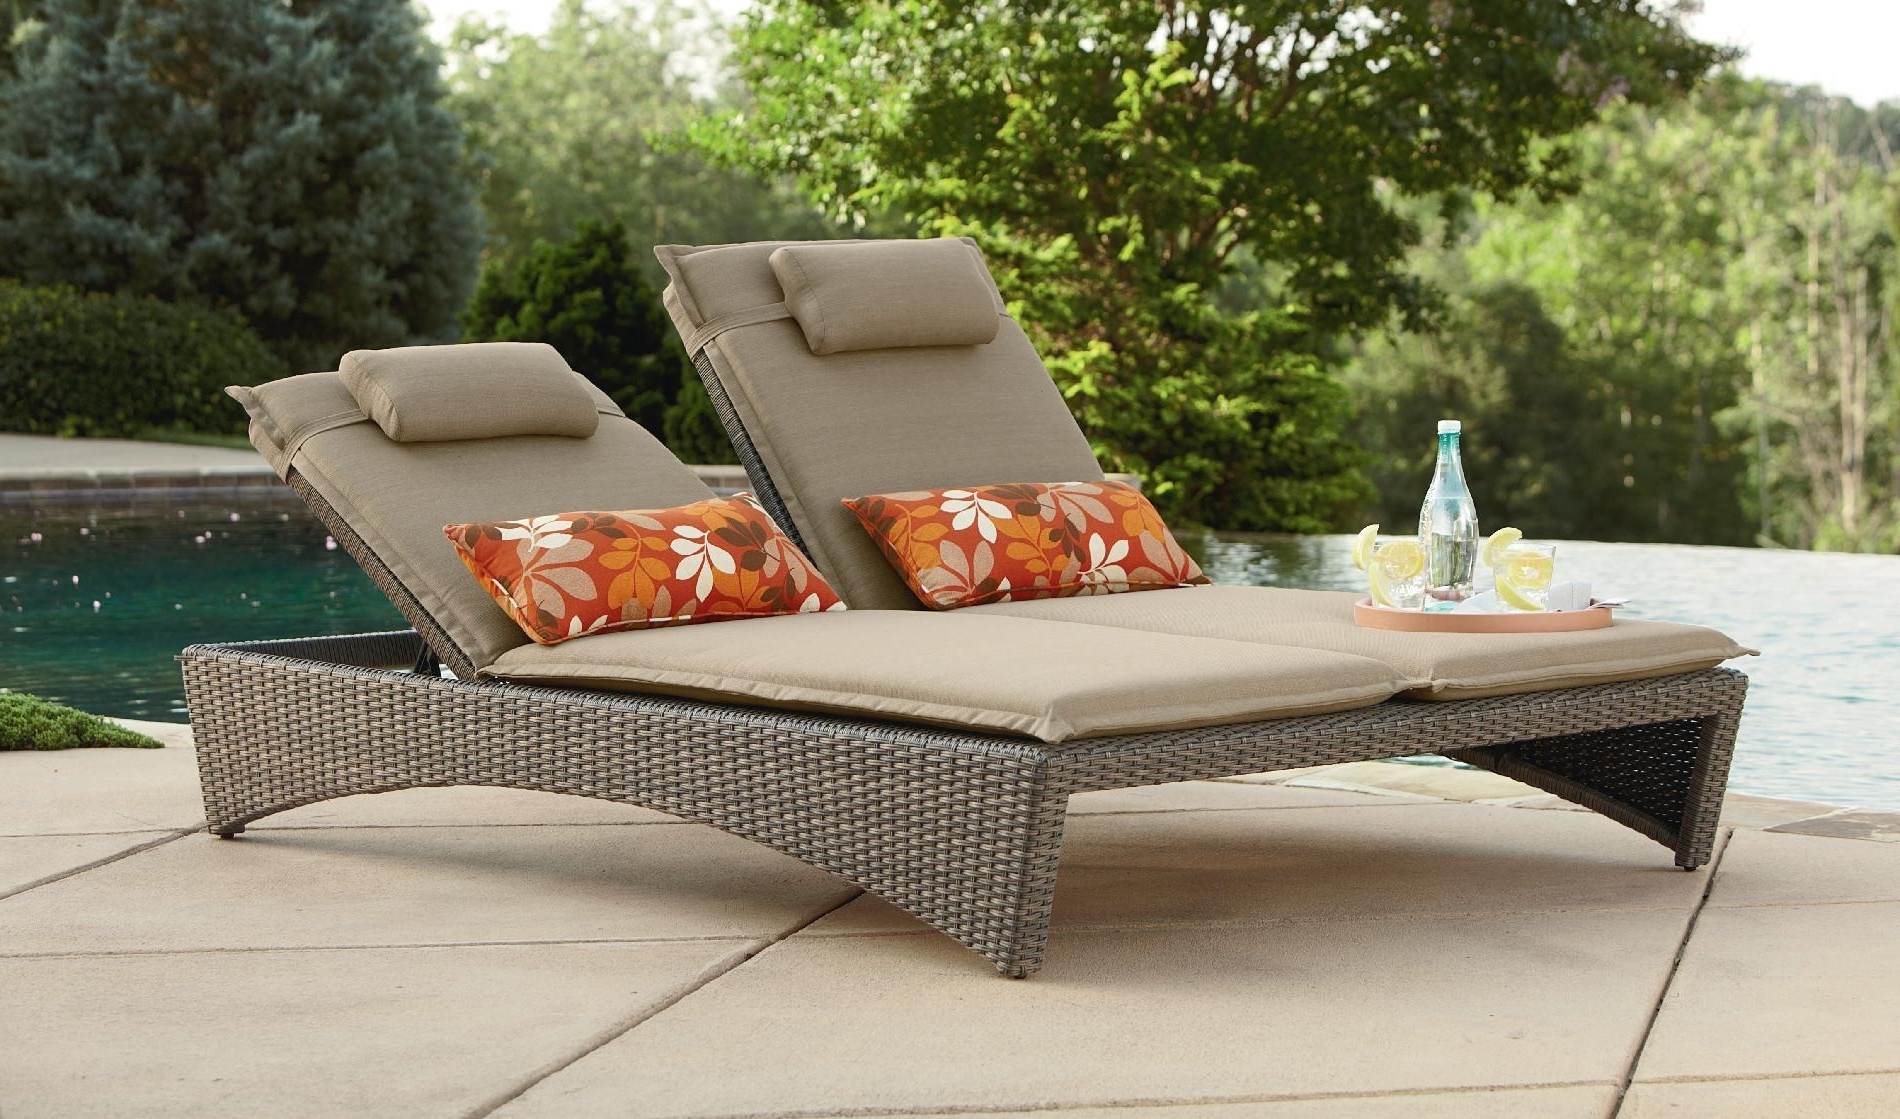 Chaise Lounge Chairs At Sears In Favorite Sears Chaise Lounge Chairs Patio Furniture • Lounge Chairs Ideas (View 1 of 15)